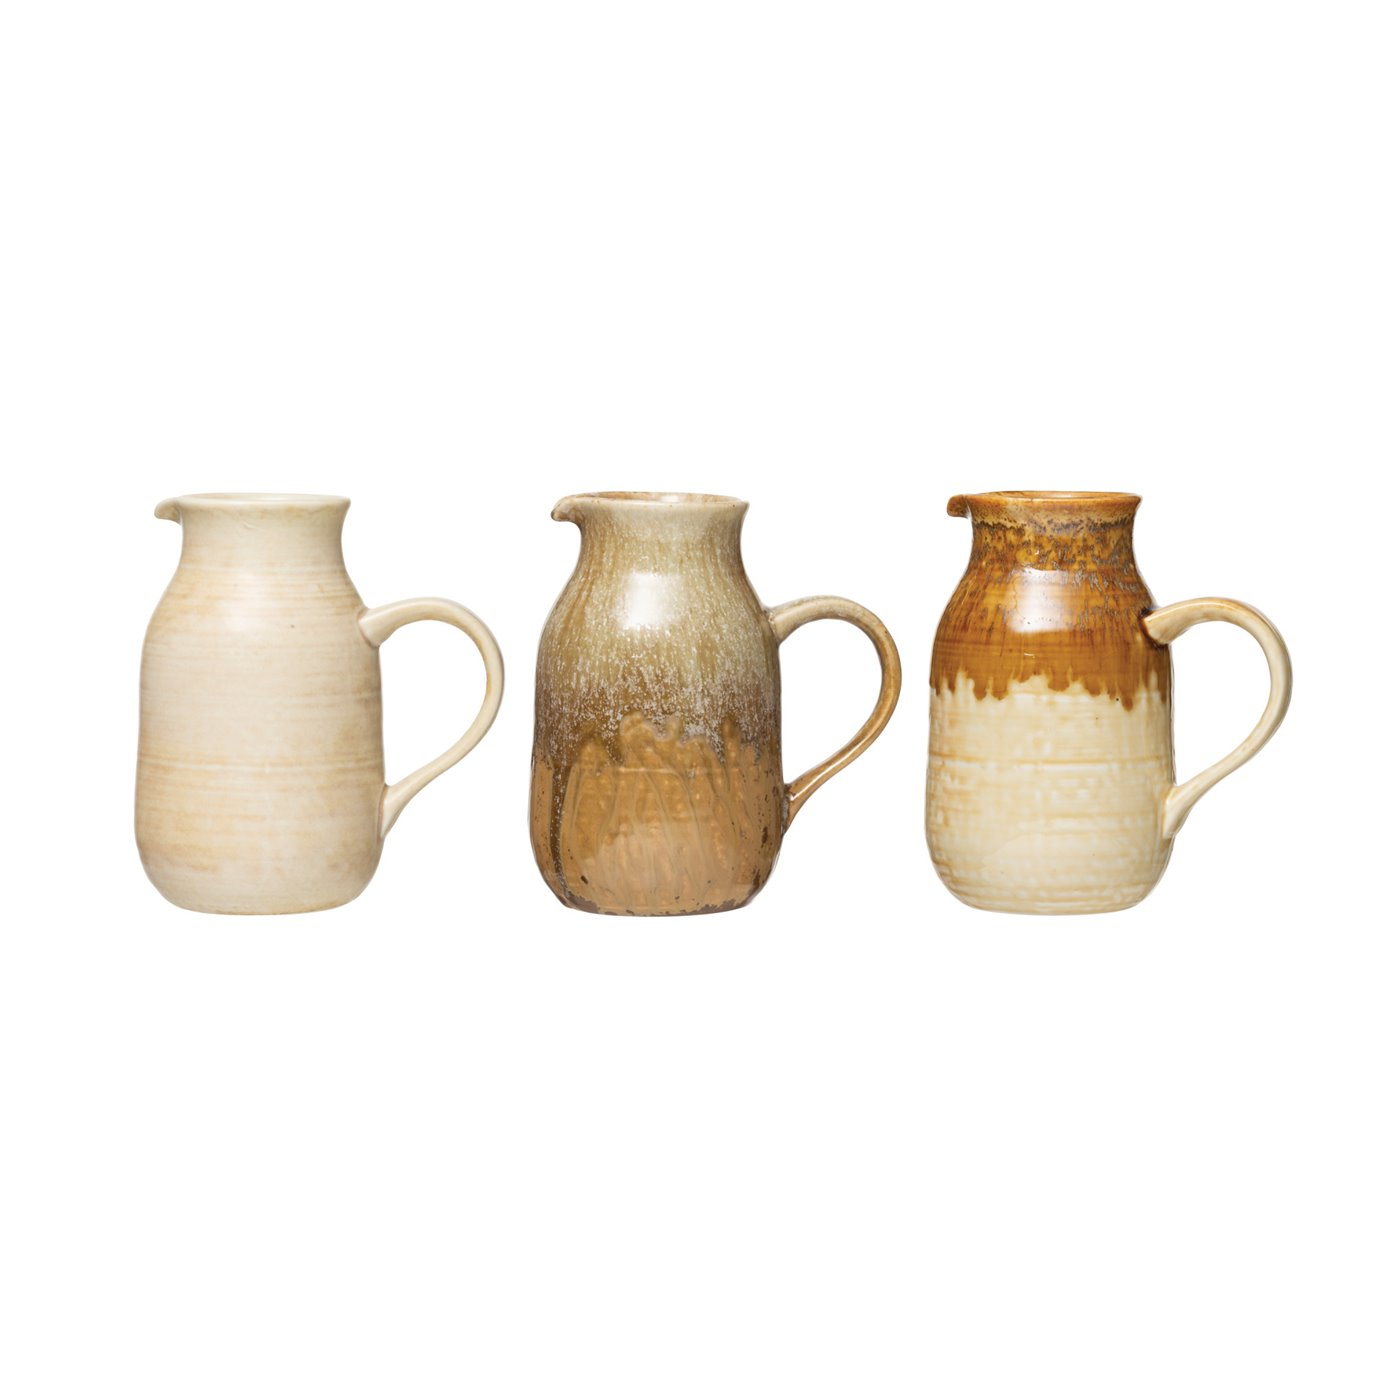 36 oz. Stoneware Pitcher with Reactive Glaze Finish (Set of 3 Colors/Each one will vary)